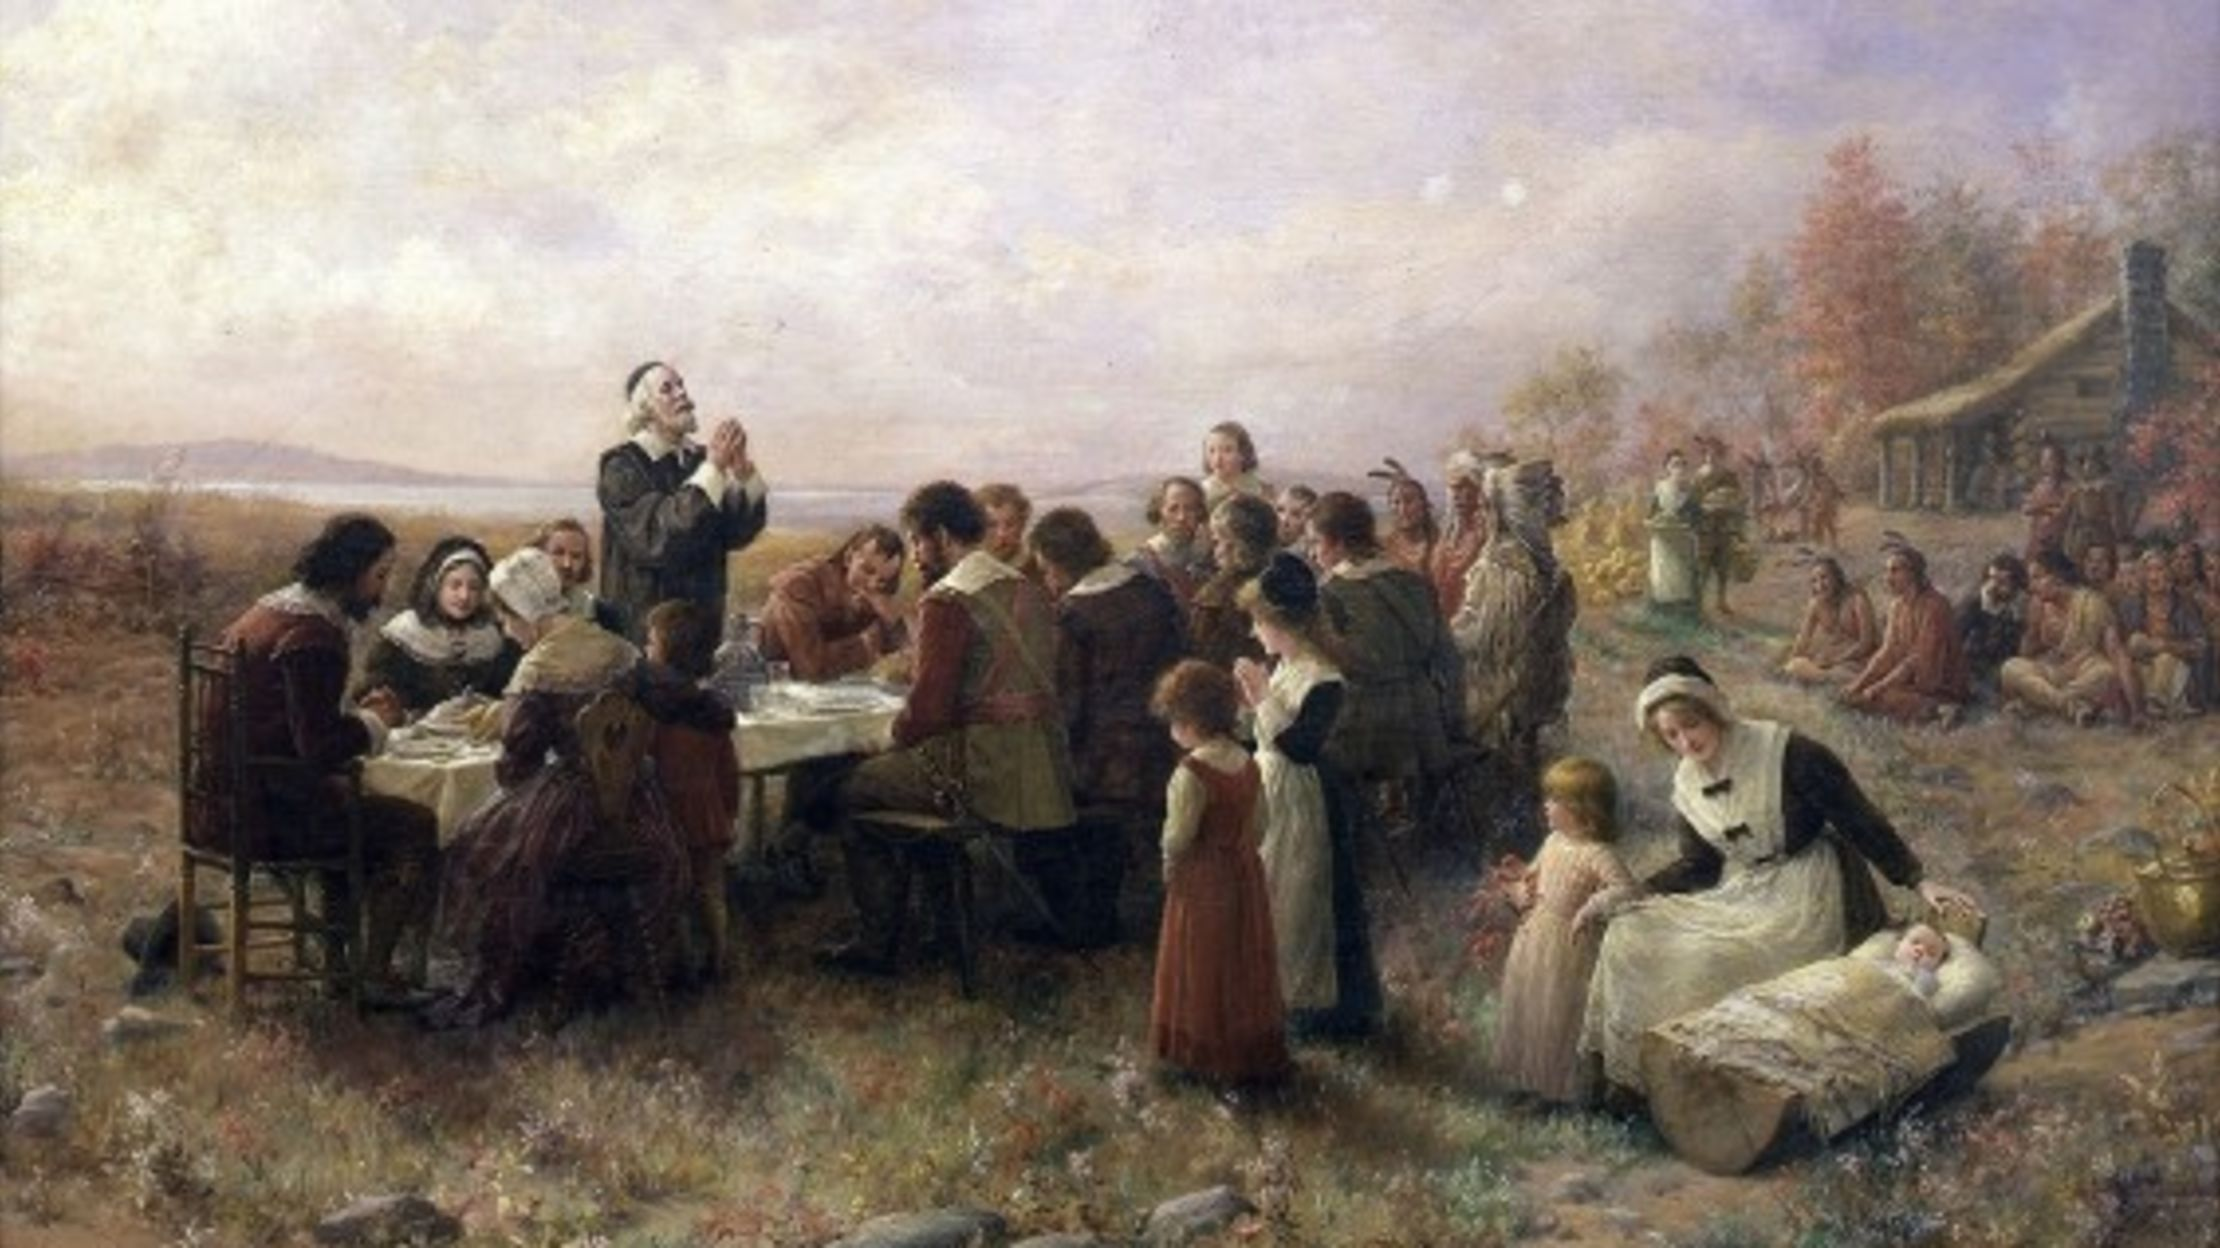 The First Thanksgiving Didn't Actually Take Place in America